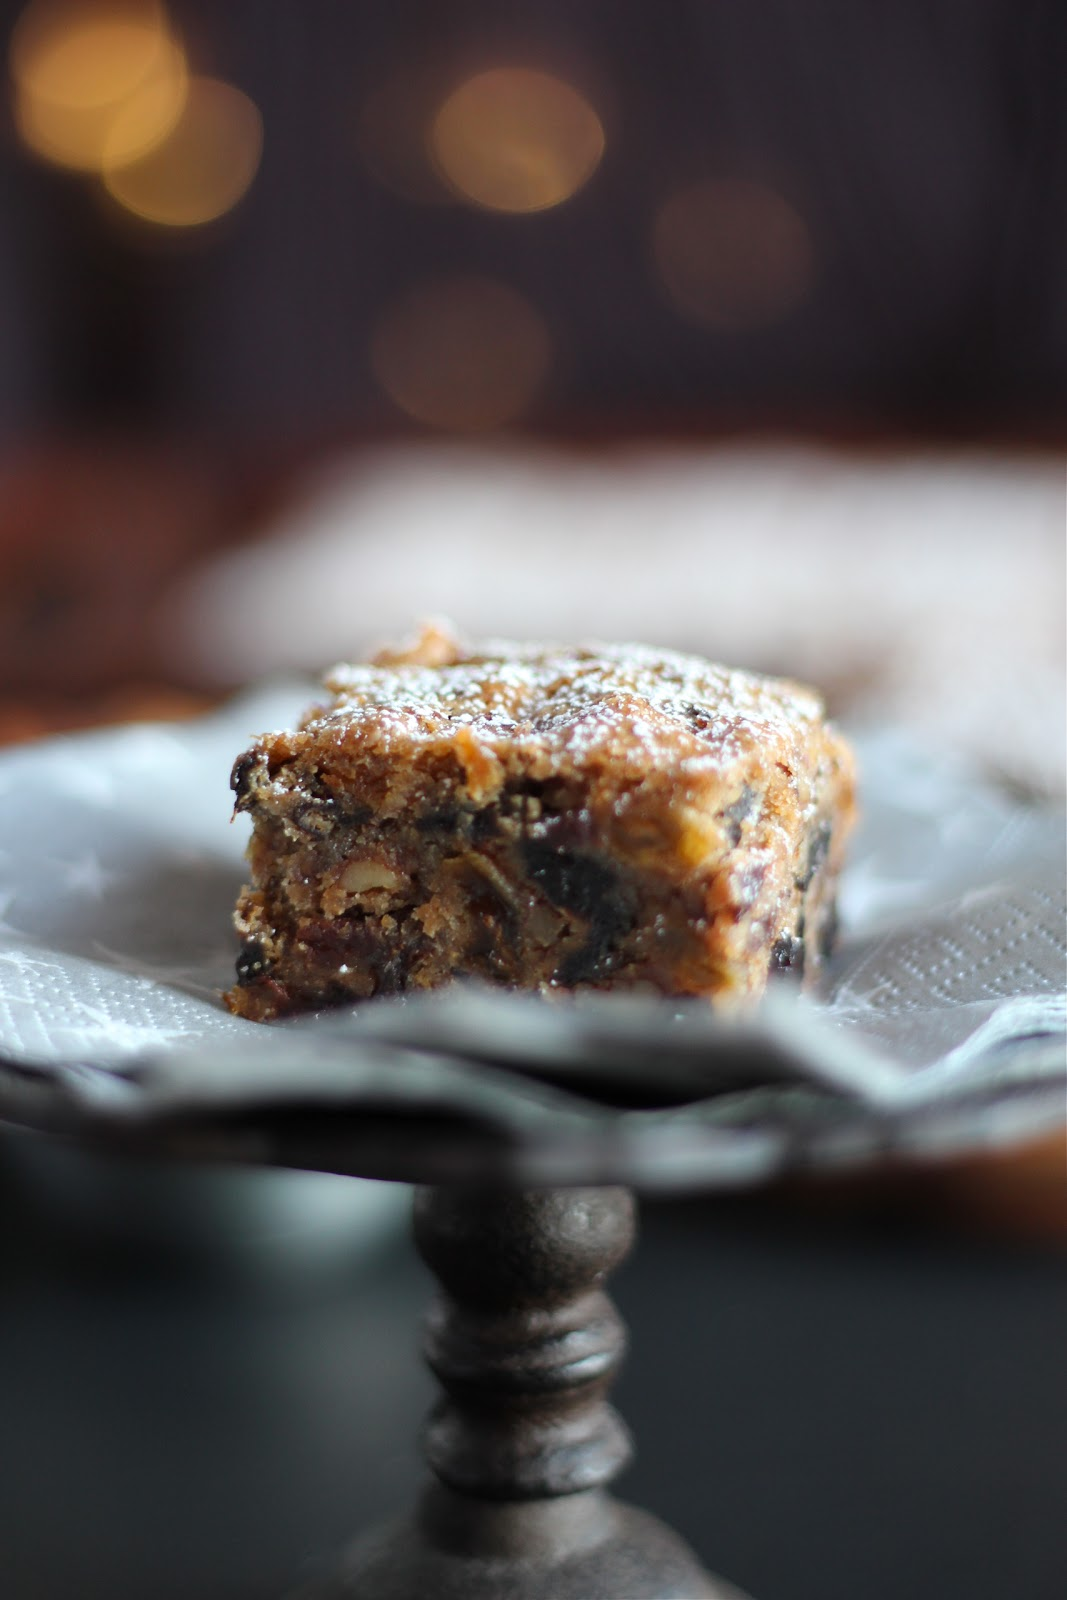 Arctic Garden Studio: Fruitcake Bars (Luscious Cherry Brandy Bars)